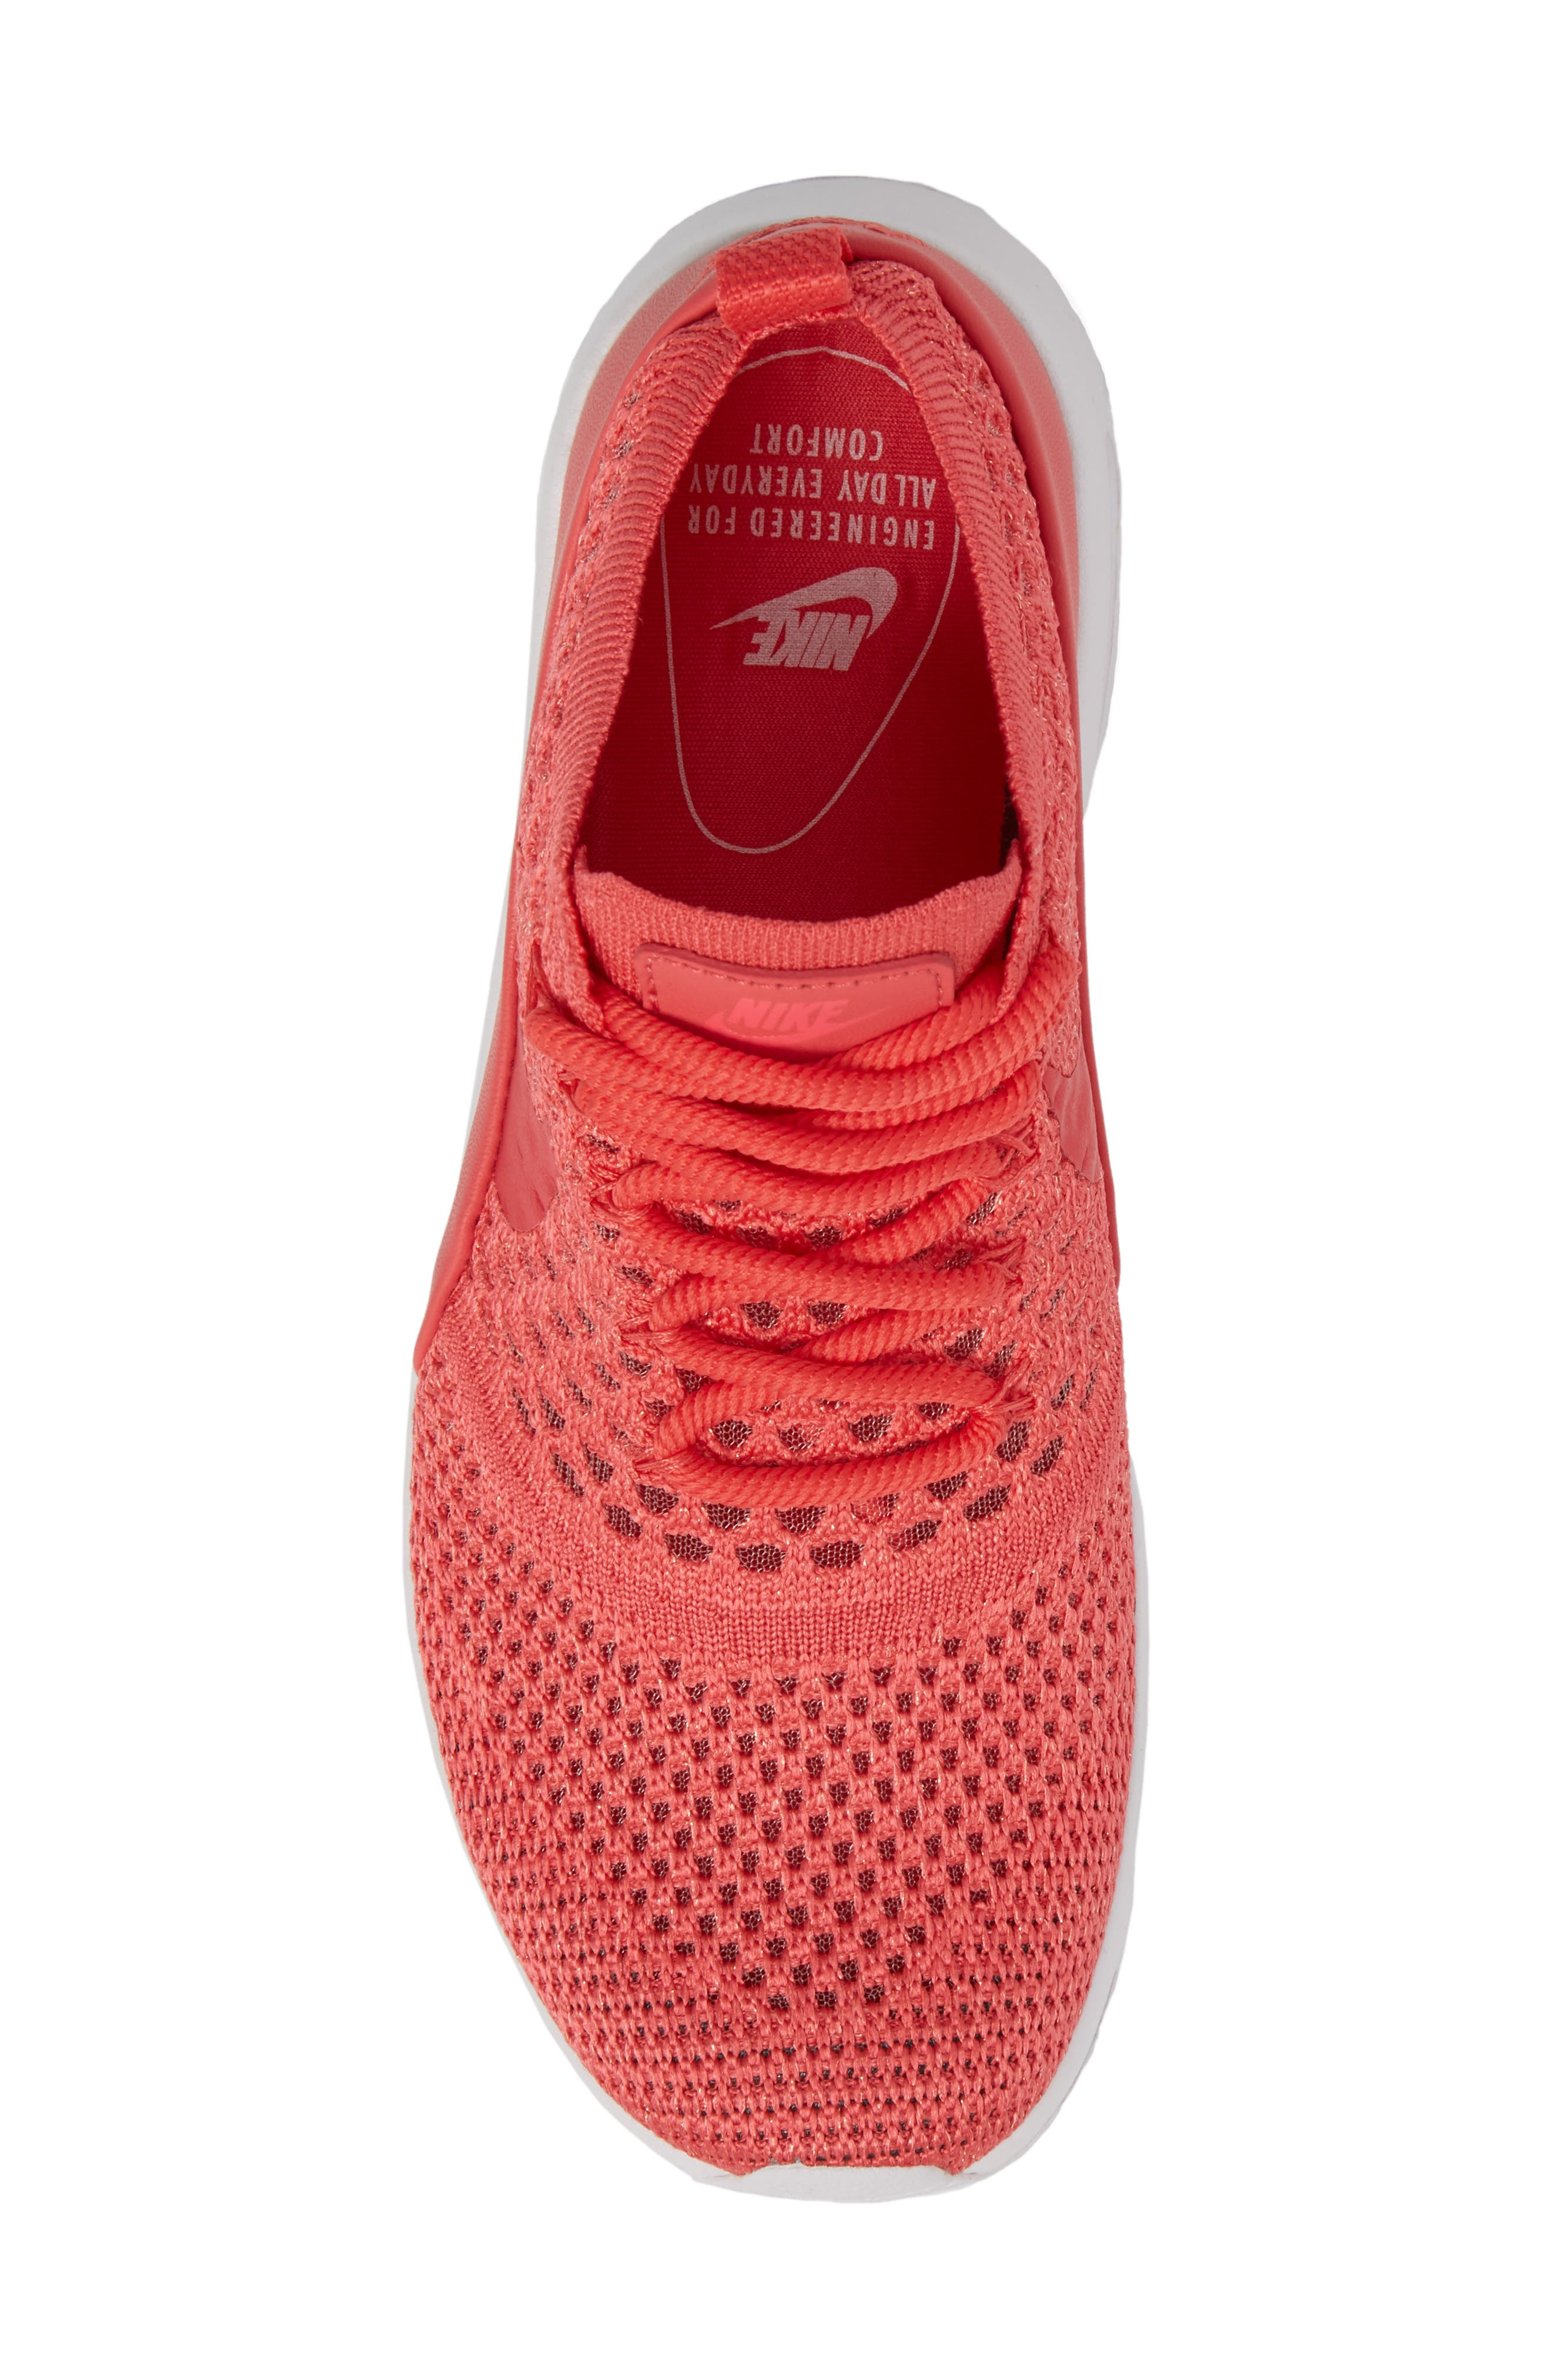 Air Max Thea Ultra Flyknit Sneaker,                             Alternate thumbnail 5, color,                             Geranium/ Geranium